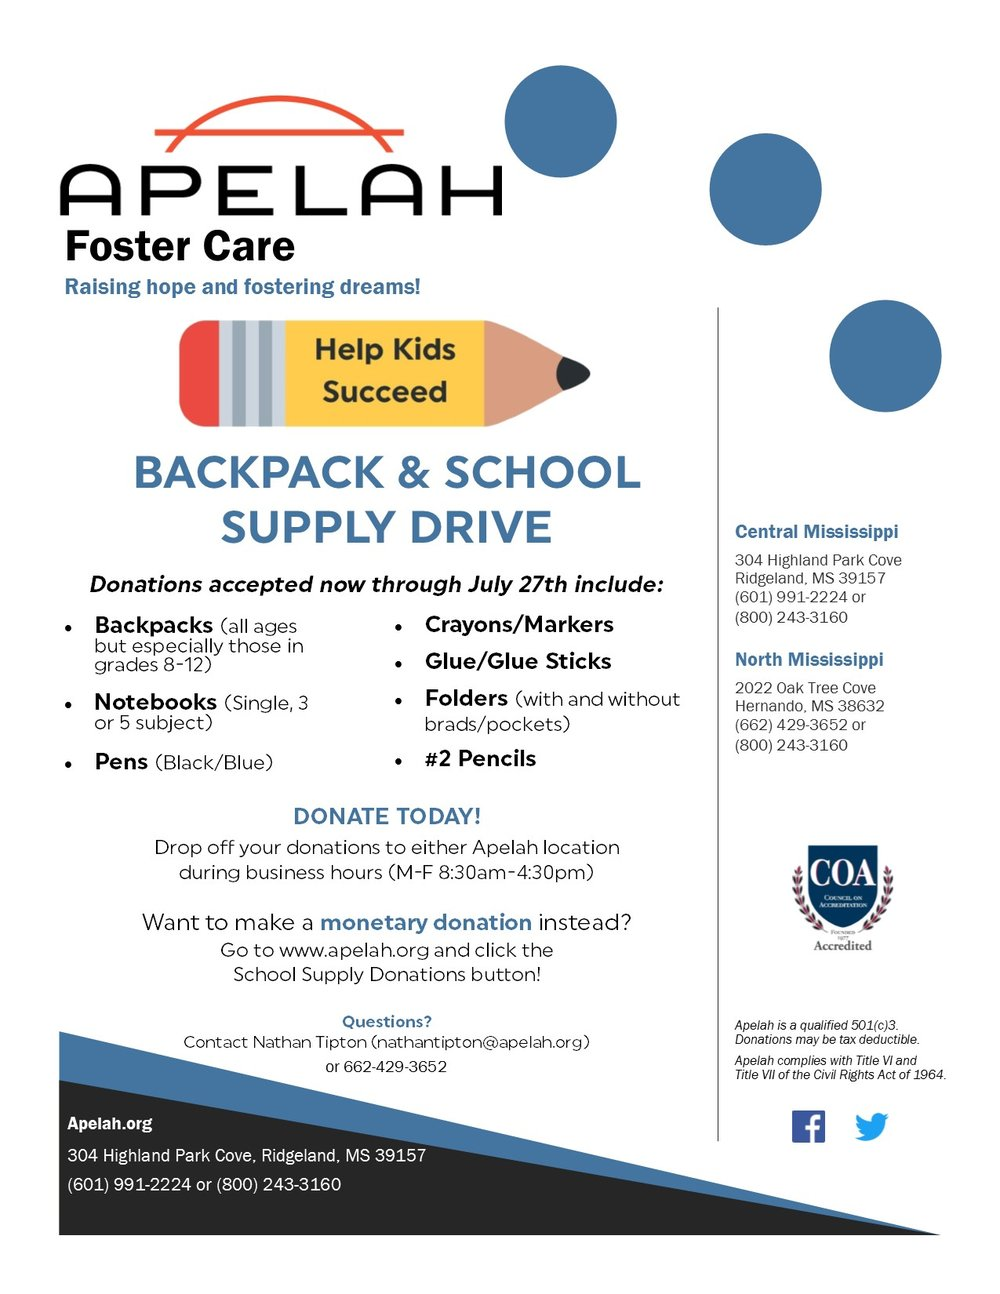 Apelah 2018 Backpack drive.jpg